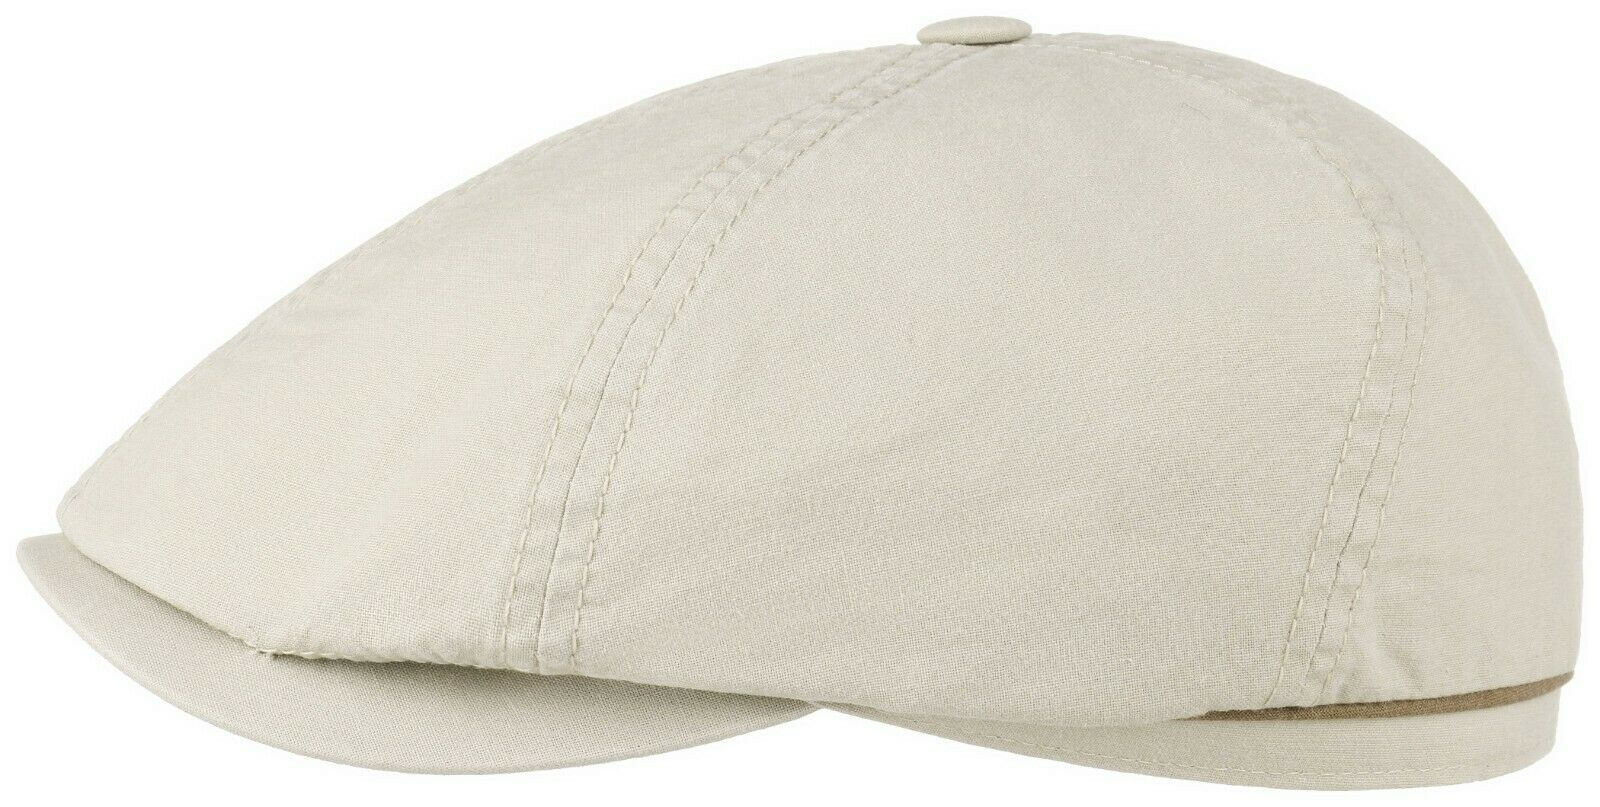 STETSON STETSON STETSON SUN GUARD ® BAKERBOY KAPPE MÜTZE ORGANIC COTTON BROOKLIN 71 BEIGE NEU | Wonderful